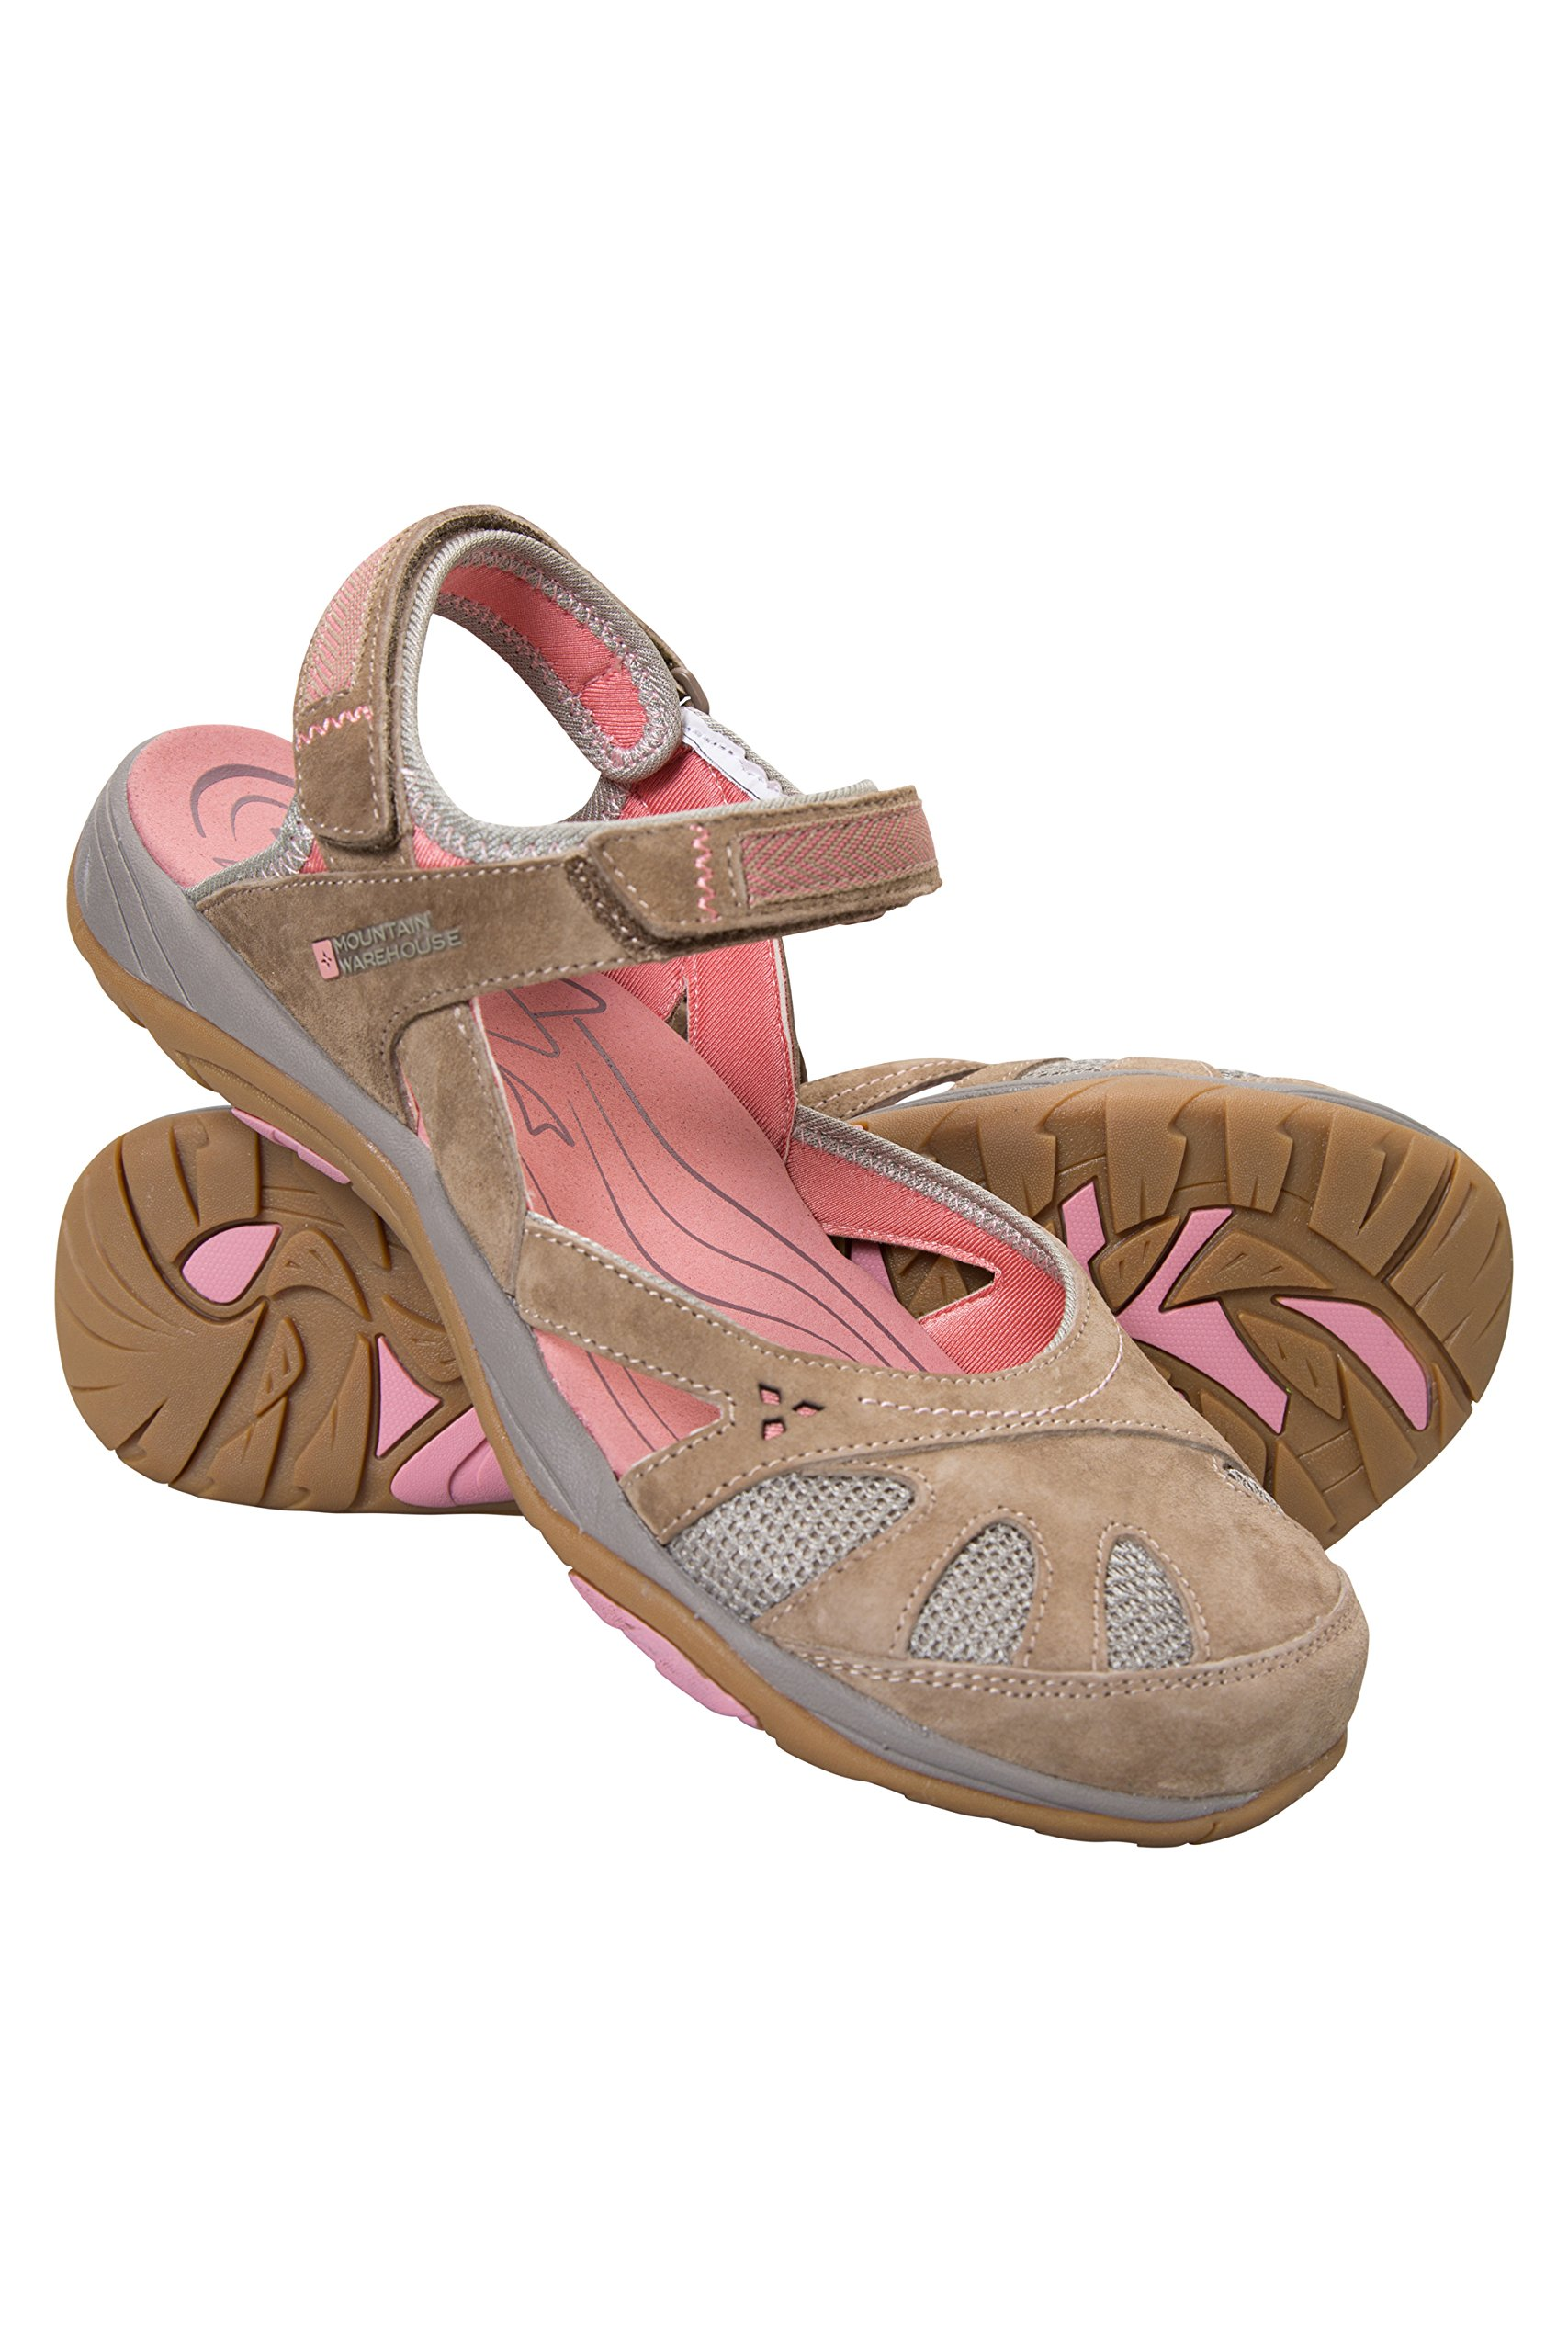 Mountain Warehouse Jasmine Womens Sandals -Ladies Summer Walking Shoes Brown 7 M US Women